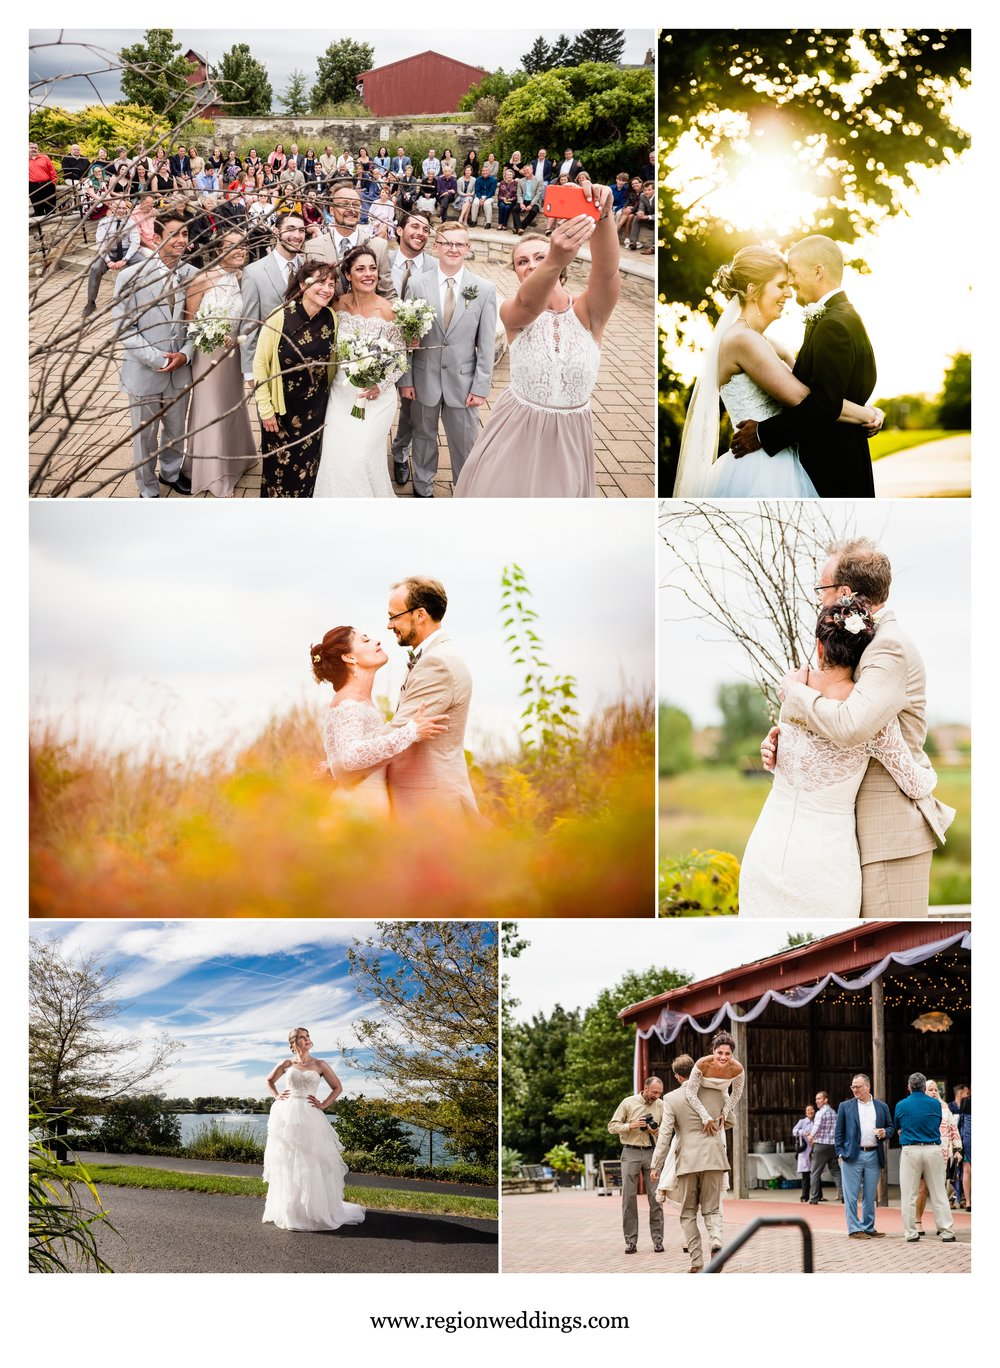 September weddings in Illinois and Indiana.